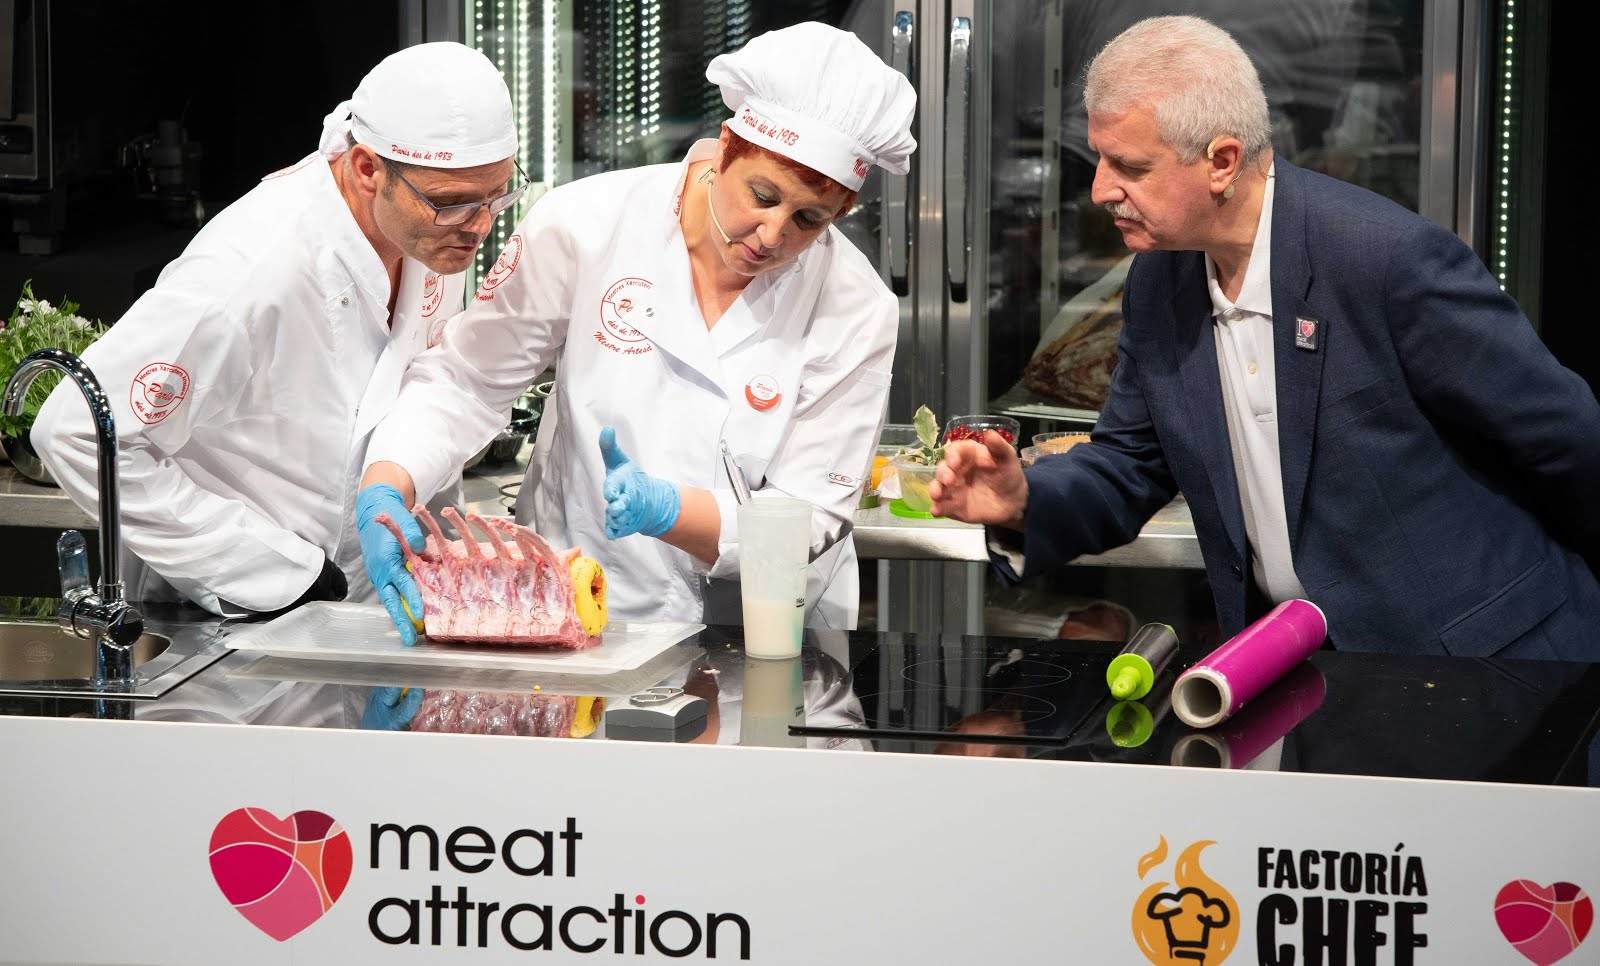 GORKA ZUMETA EN 'MEAT ATTRACTION' 2019